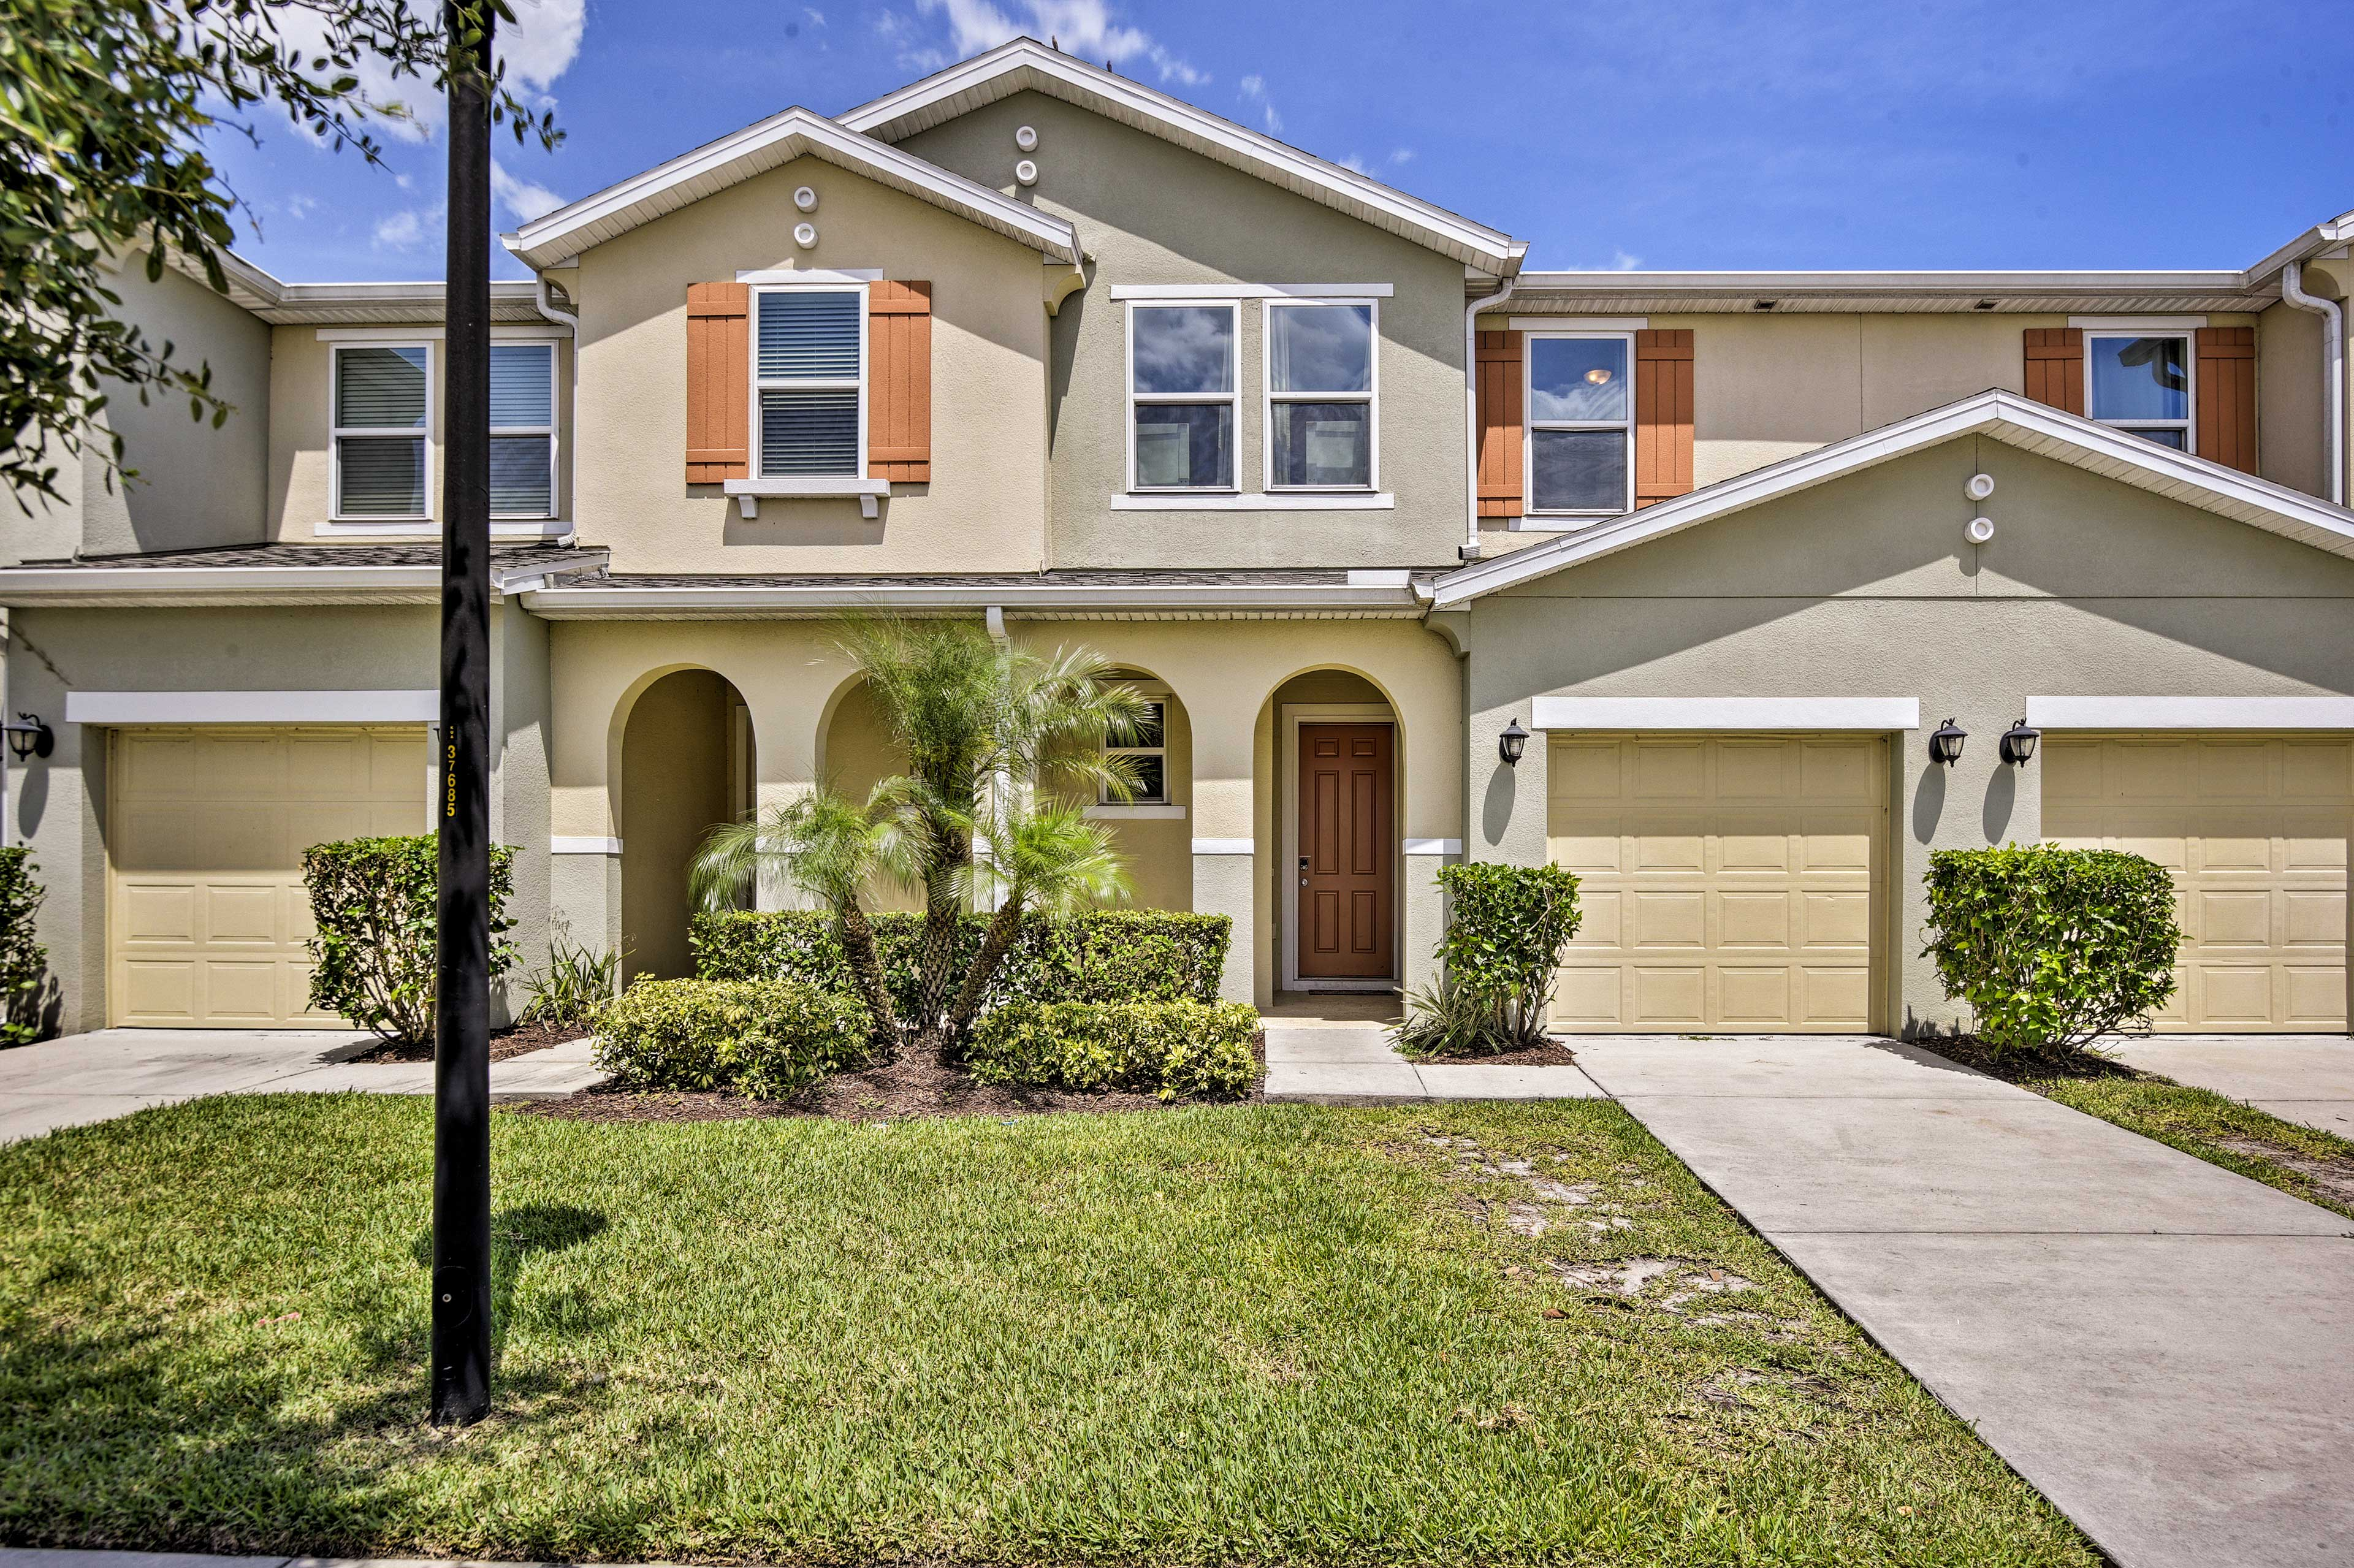 This vacation rental in Kissimmee is the perfect home base for Disney adventures